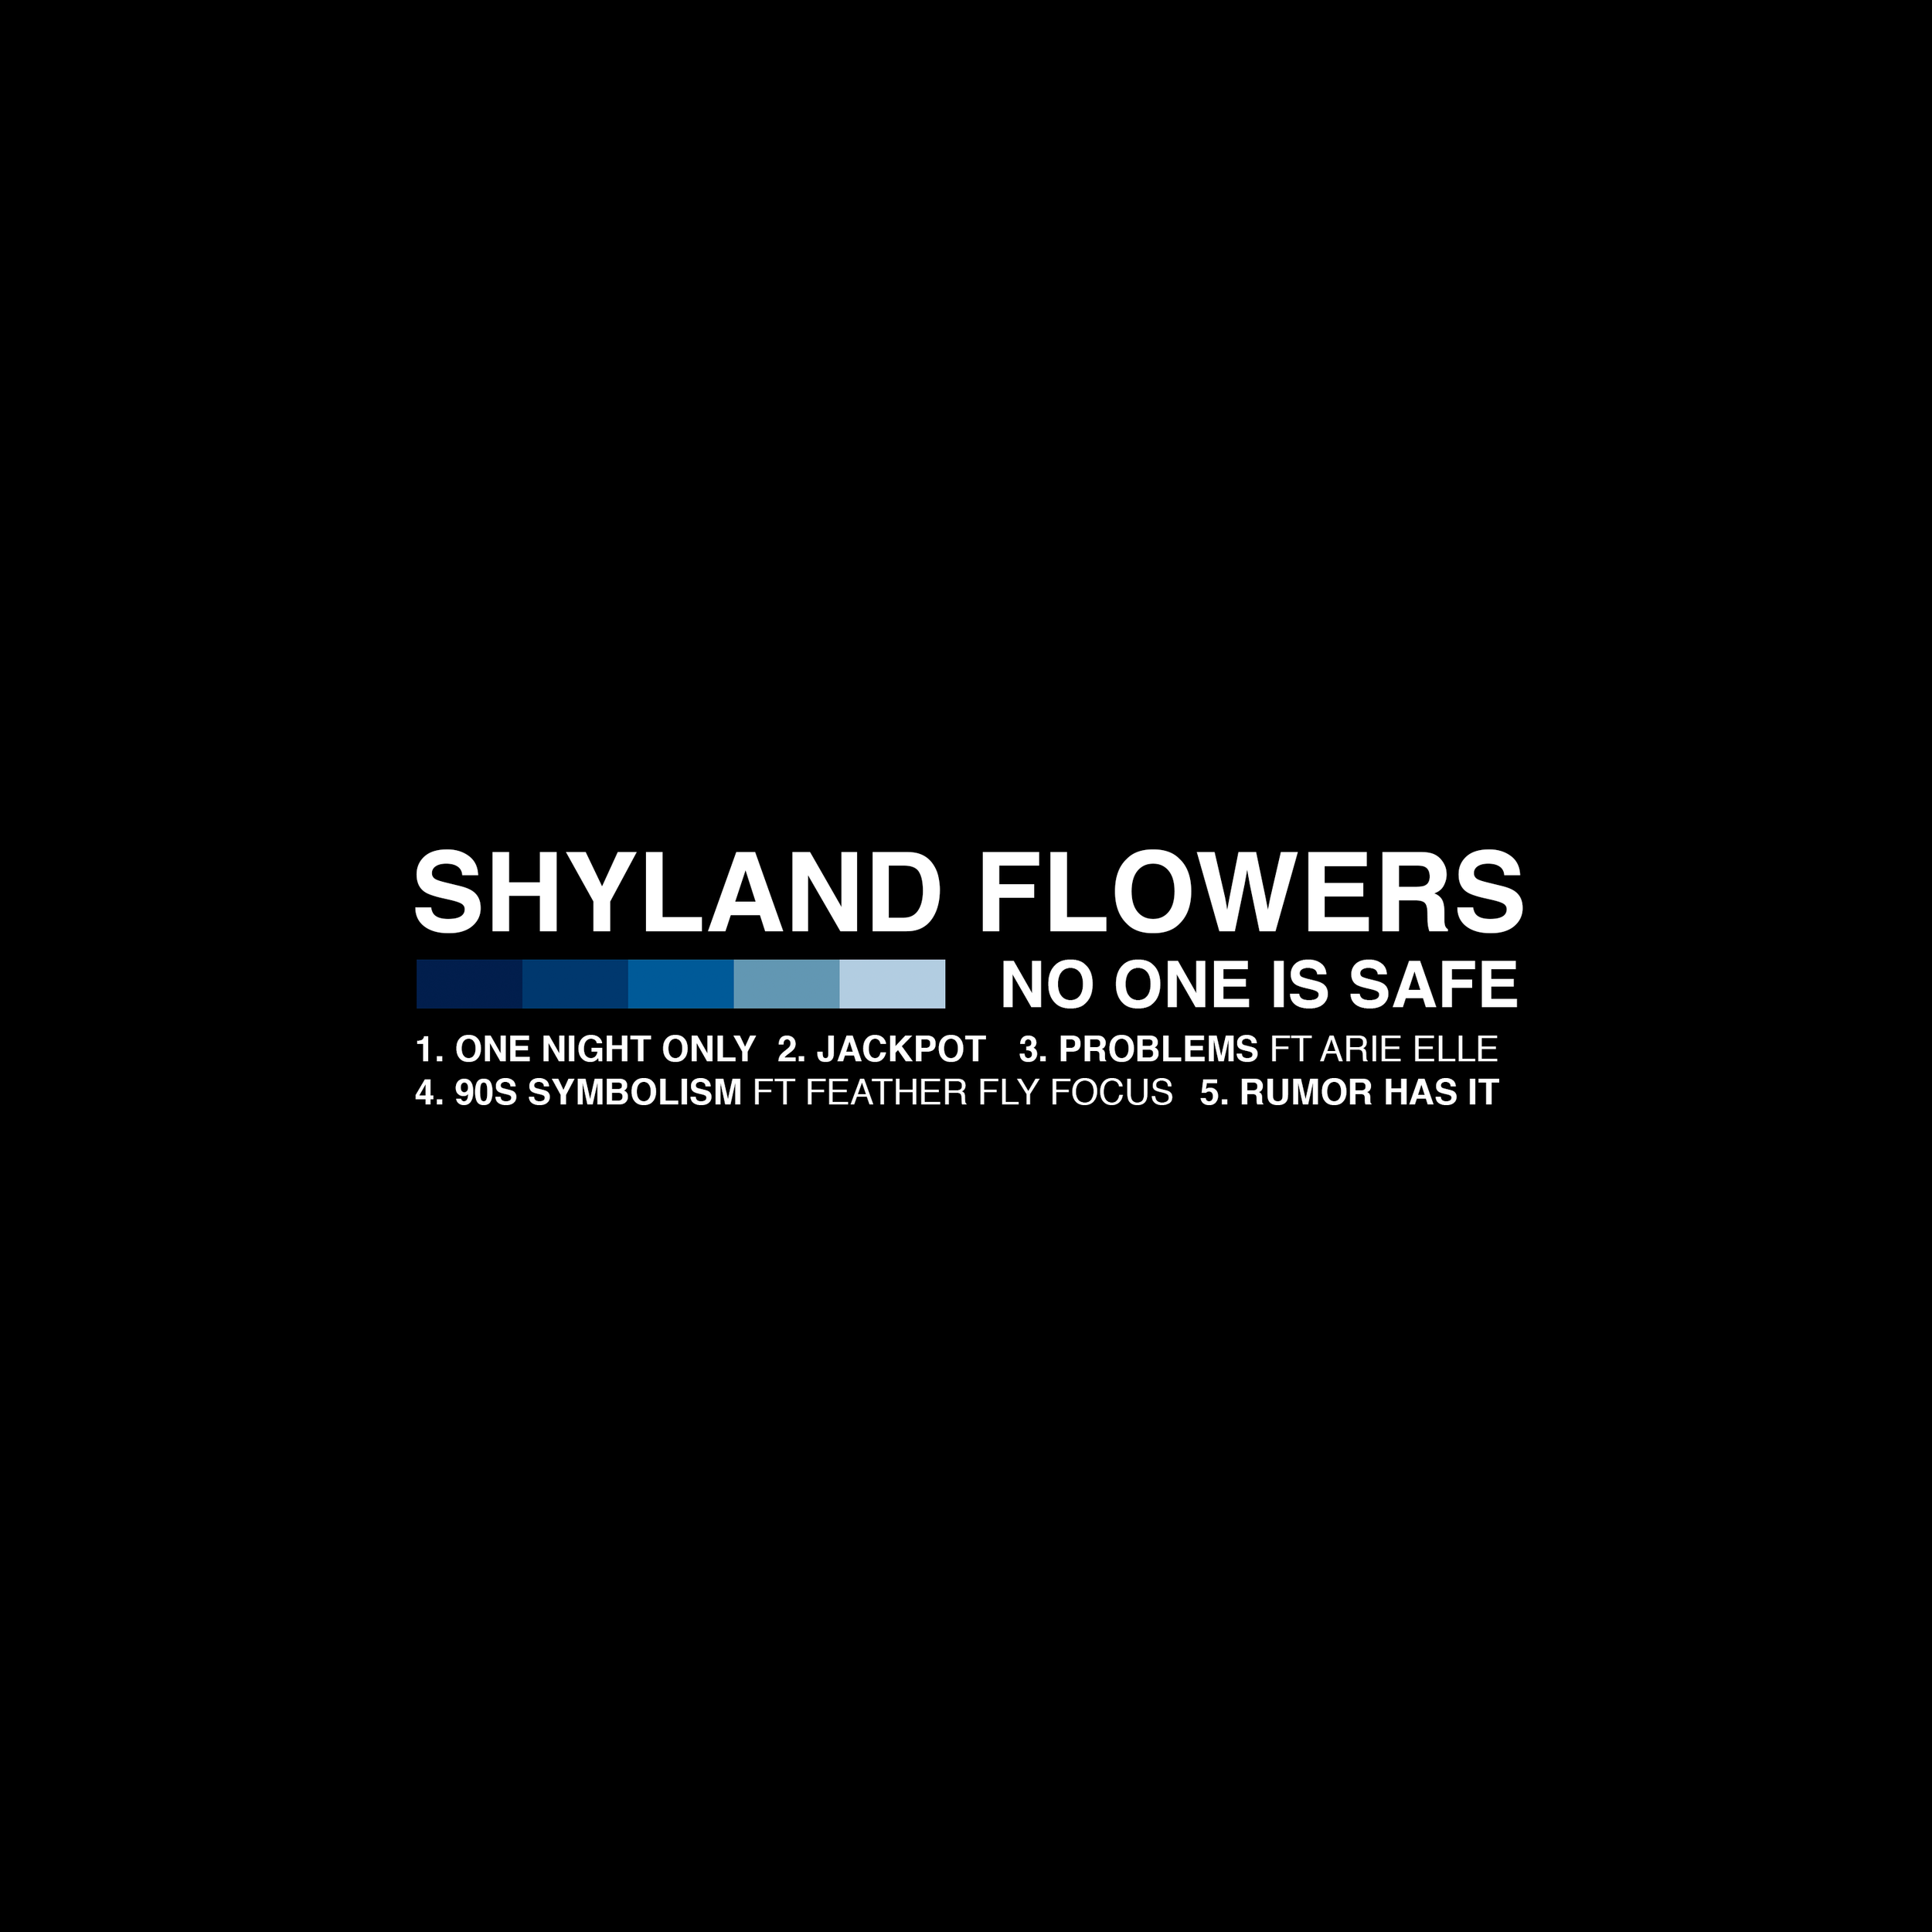 shyland flowers - no one is safe BLACK.png